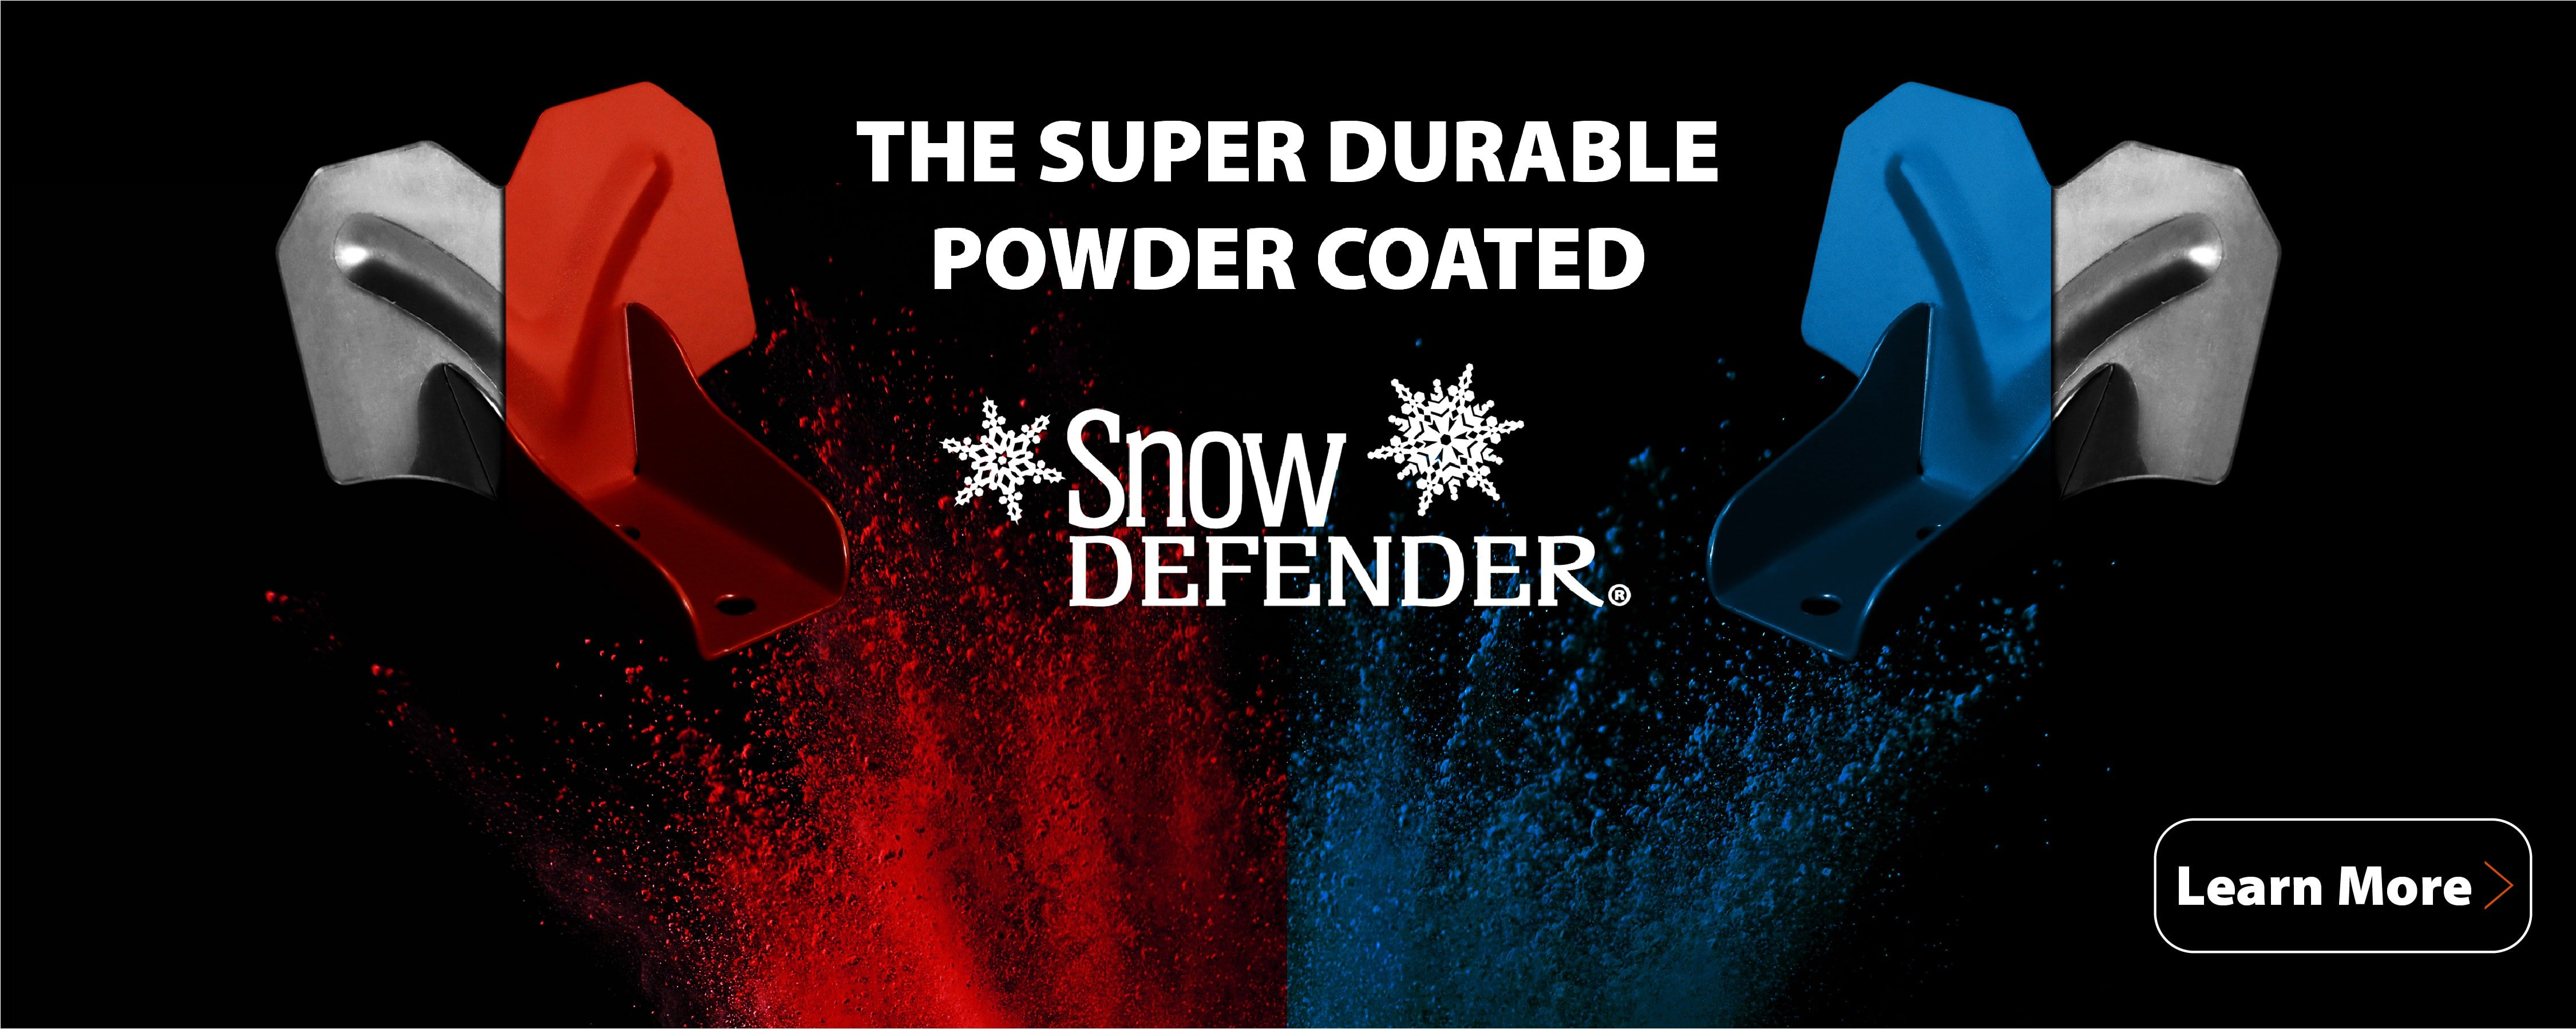 The super durable powder coated Snow Defender snow guards